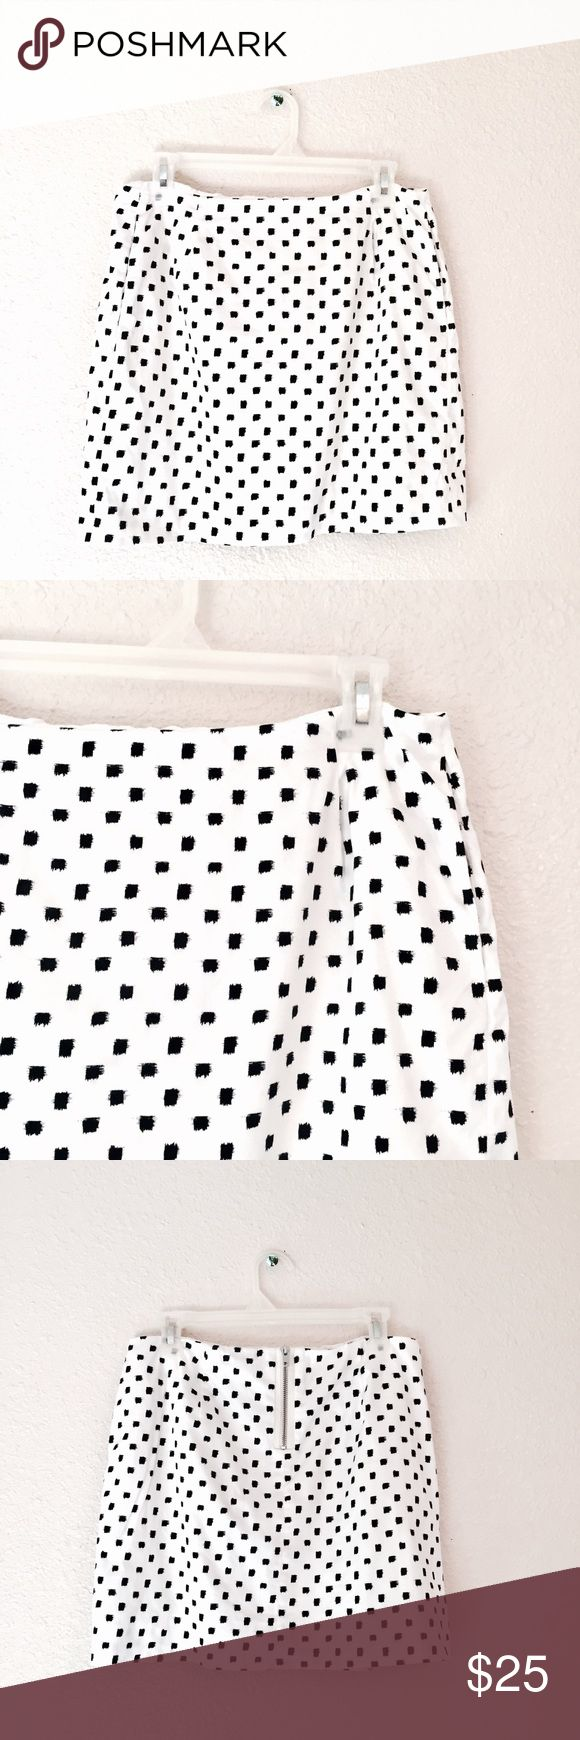 J Crew white mini skirt black square Polka dots 4 Awesome minimalist skirt from J.Crew. White mini skirt that has black square polkadots. It's got a cool hash effect to it. Fully lined. Zipper down the back with the metal zipper. Great for all occasions and work appropriate. Excellent used condition. Size 4. J. Crew Skirts Mini